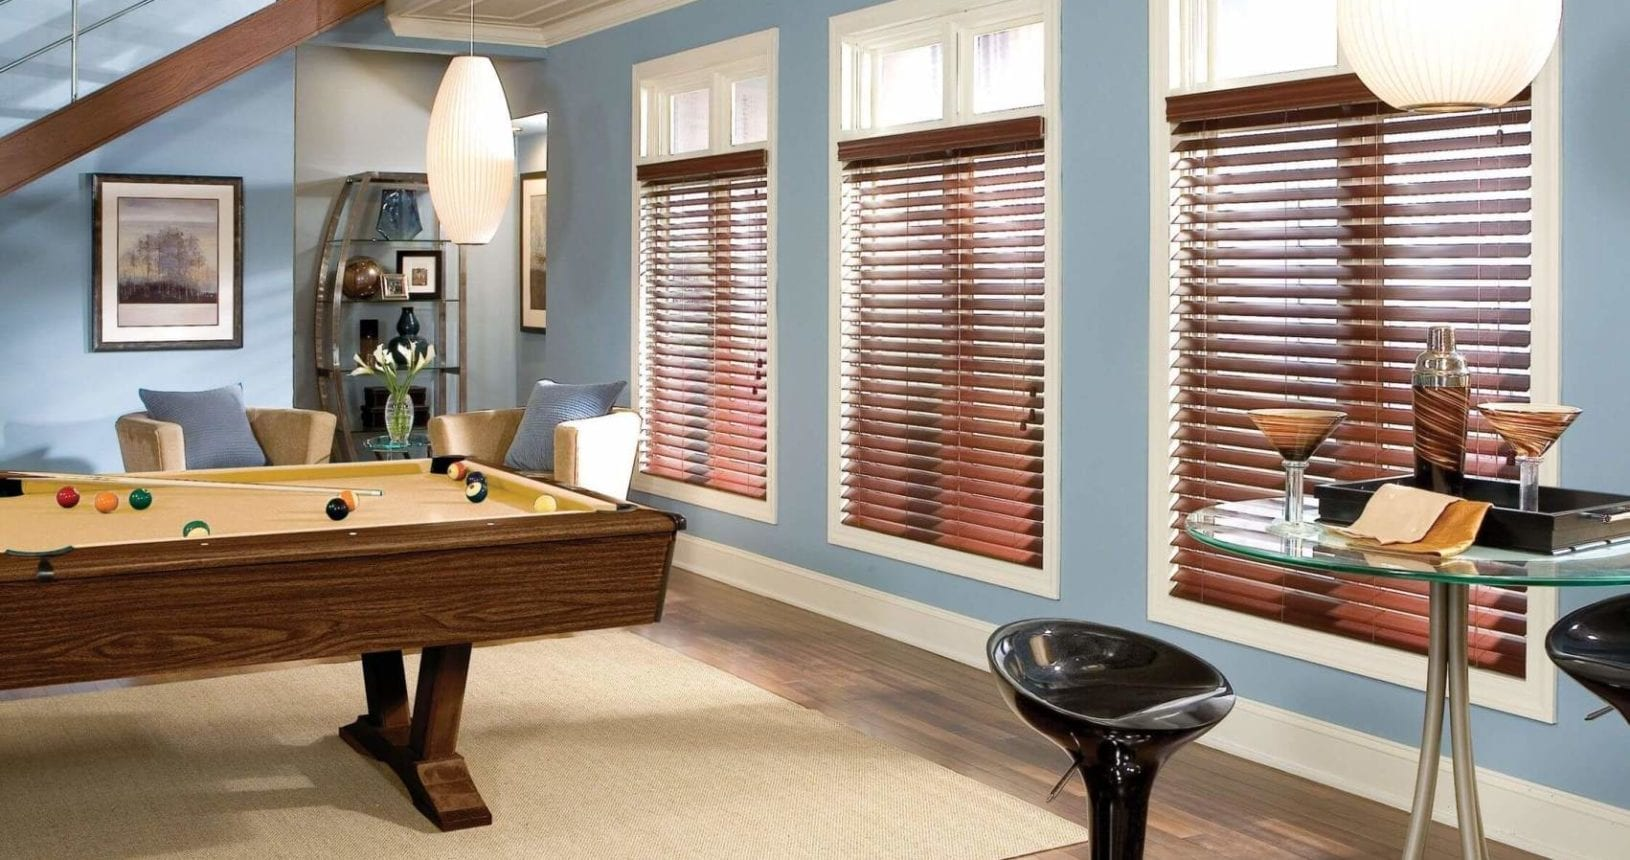 Timberblind Cary NC Window Blinds Shade